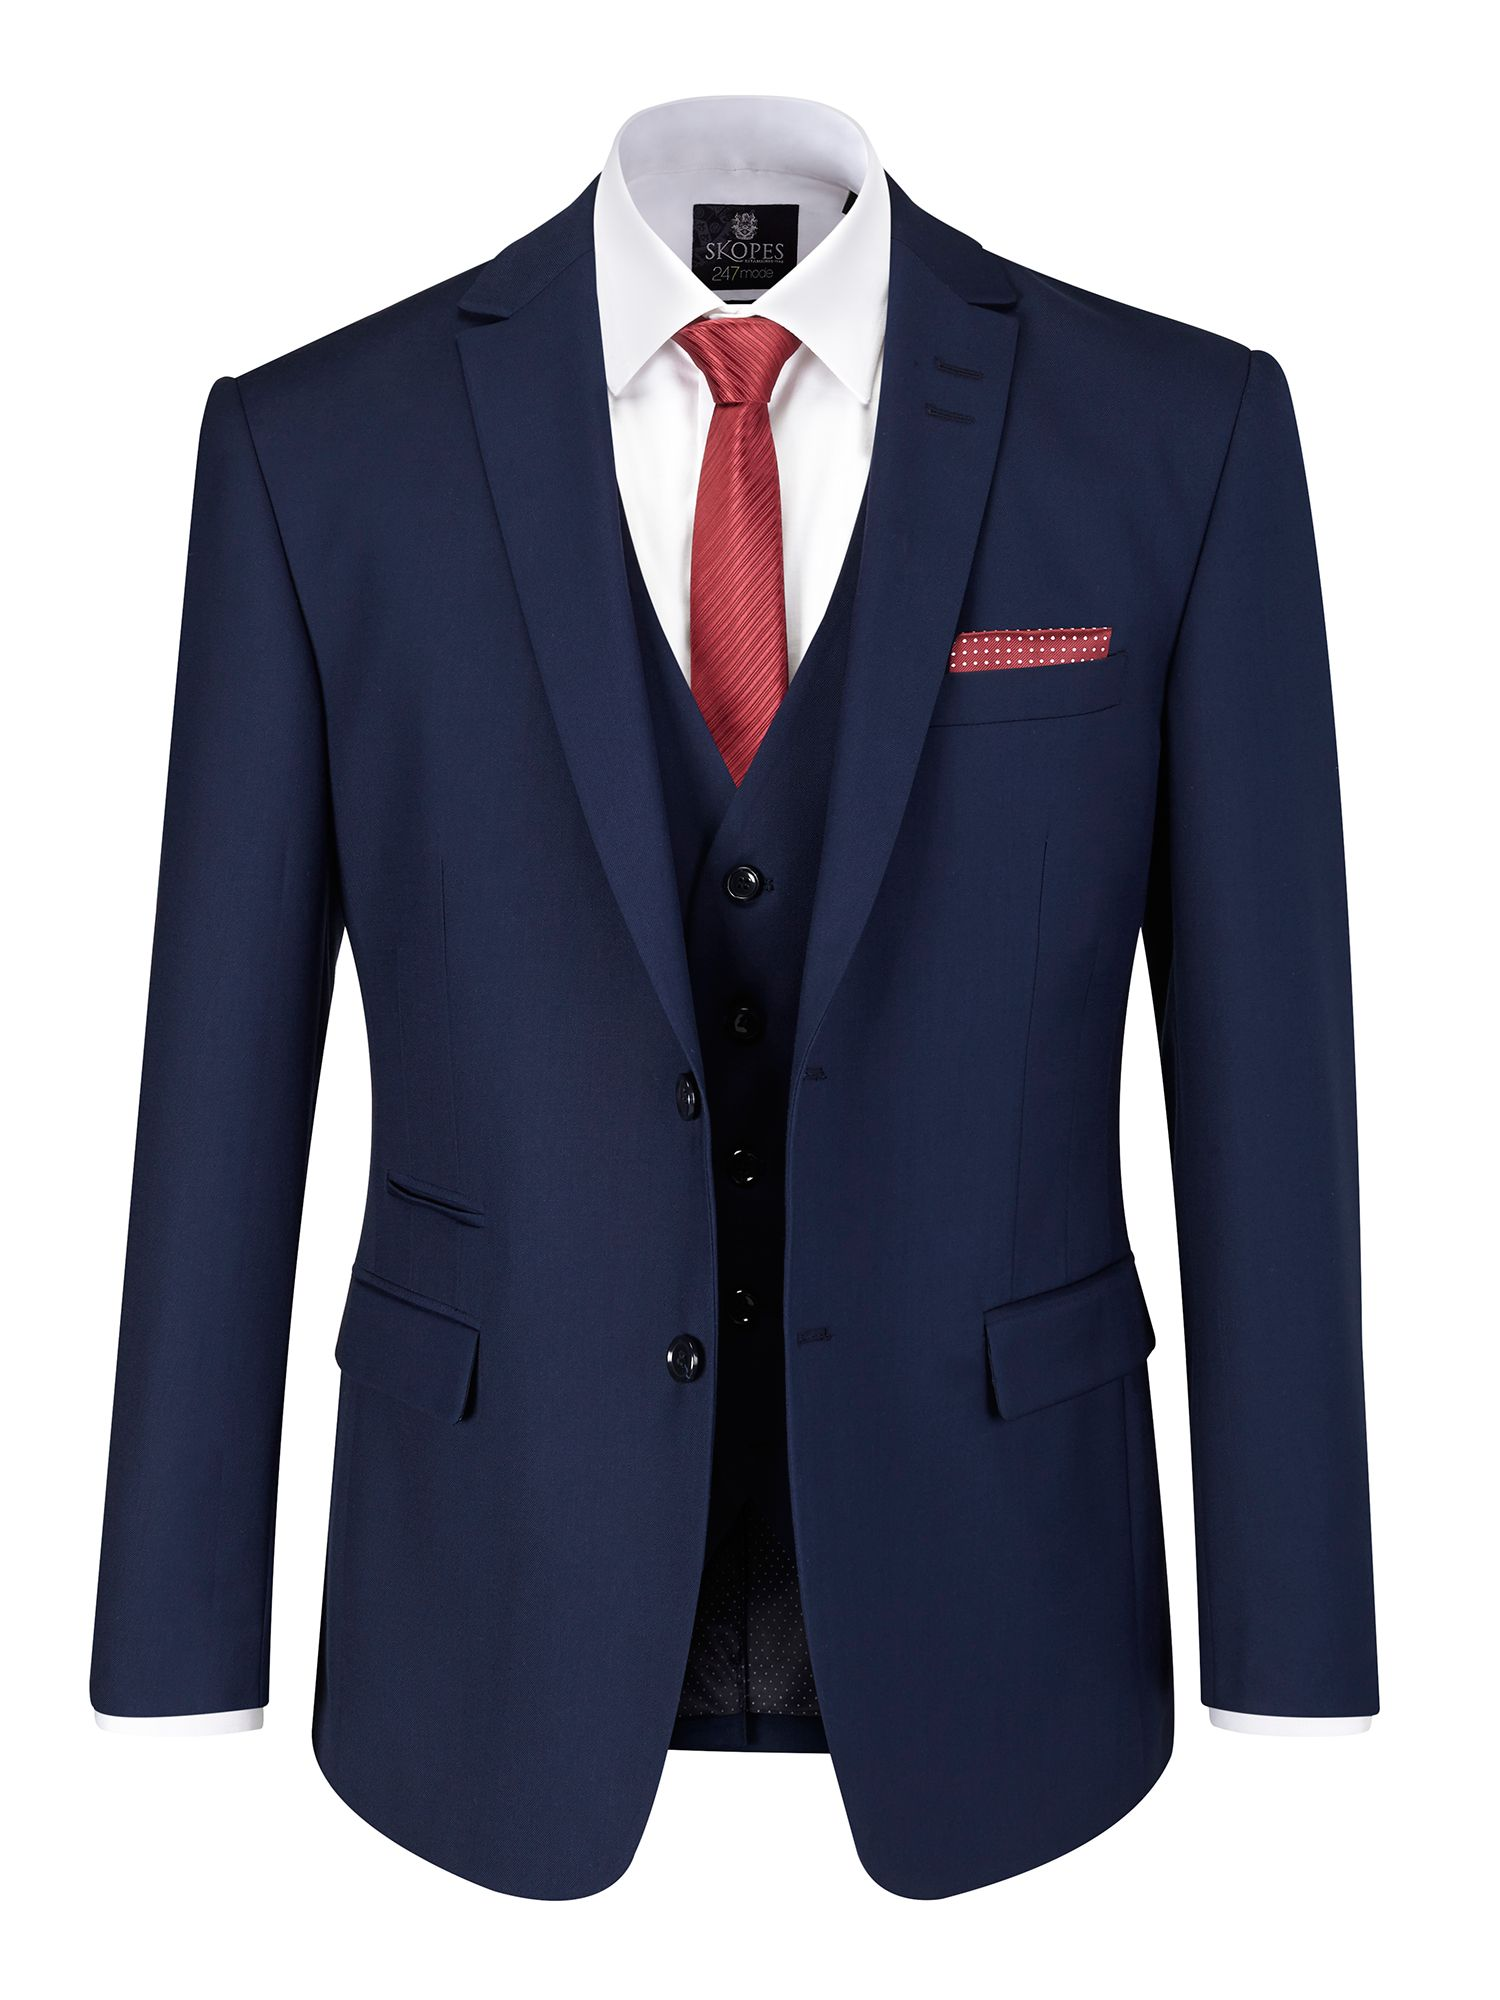 Men's Suit Jackets Sale at House of Fraser